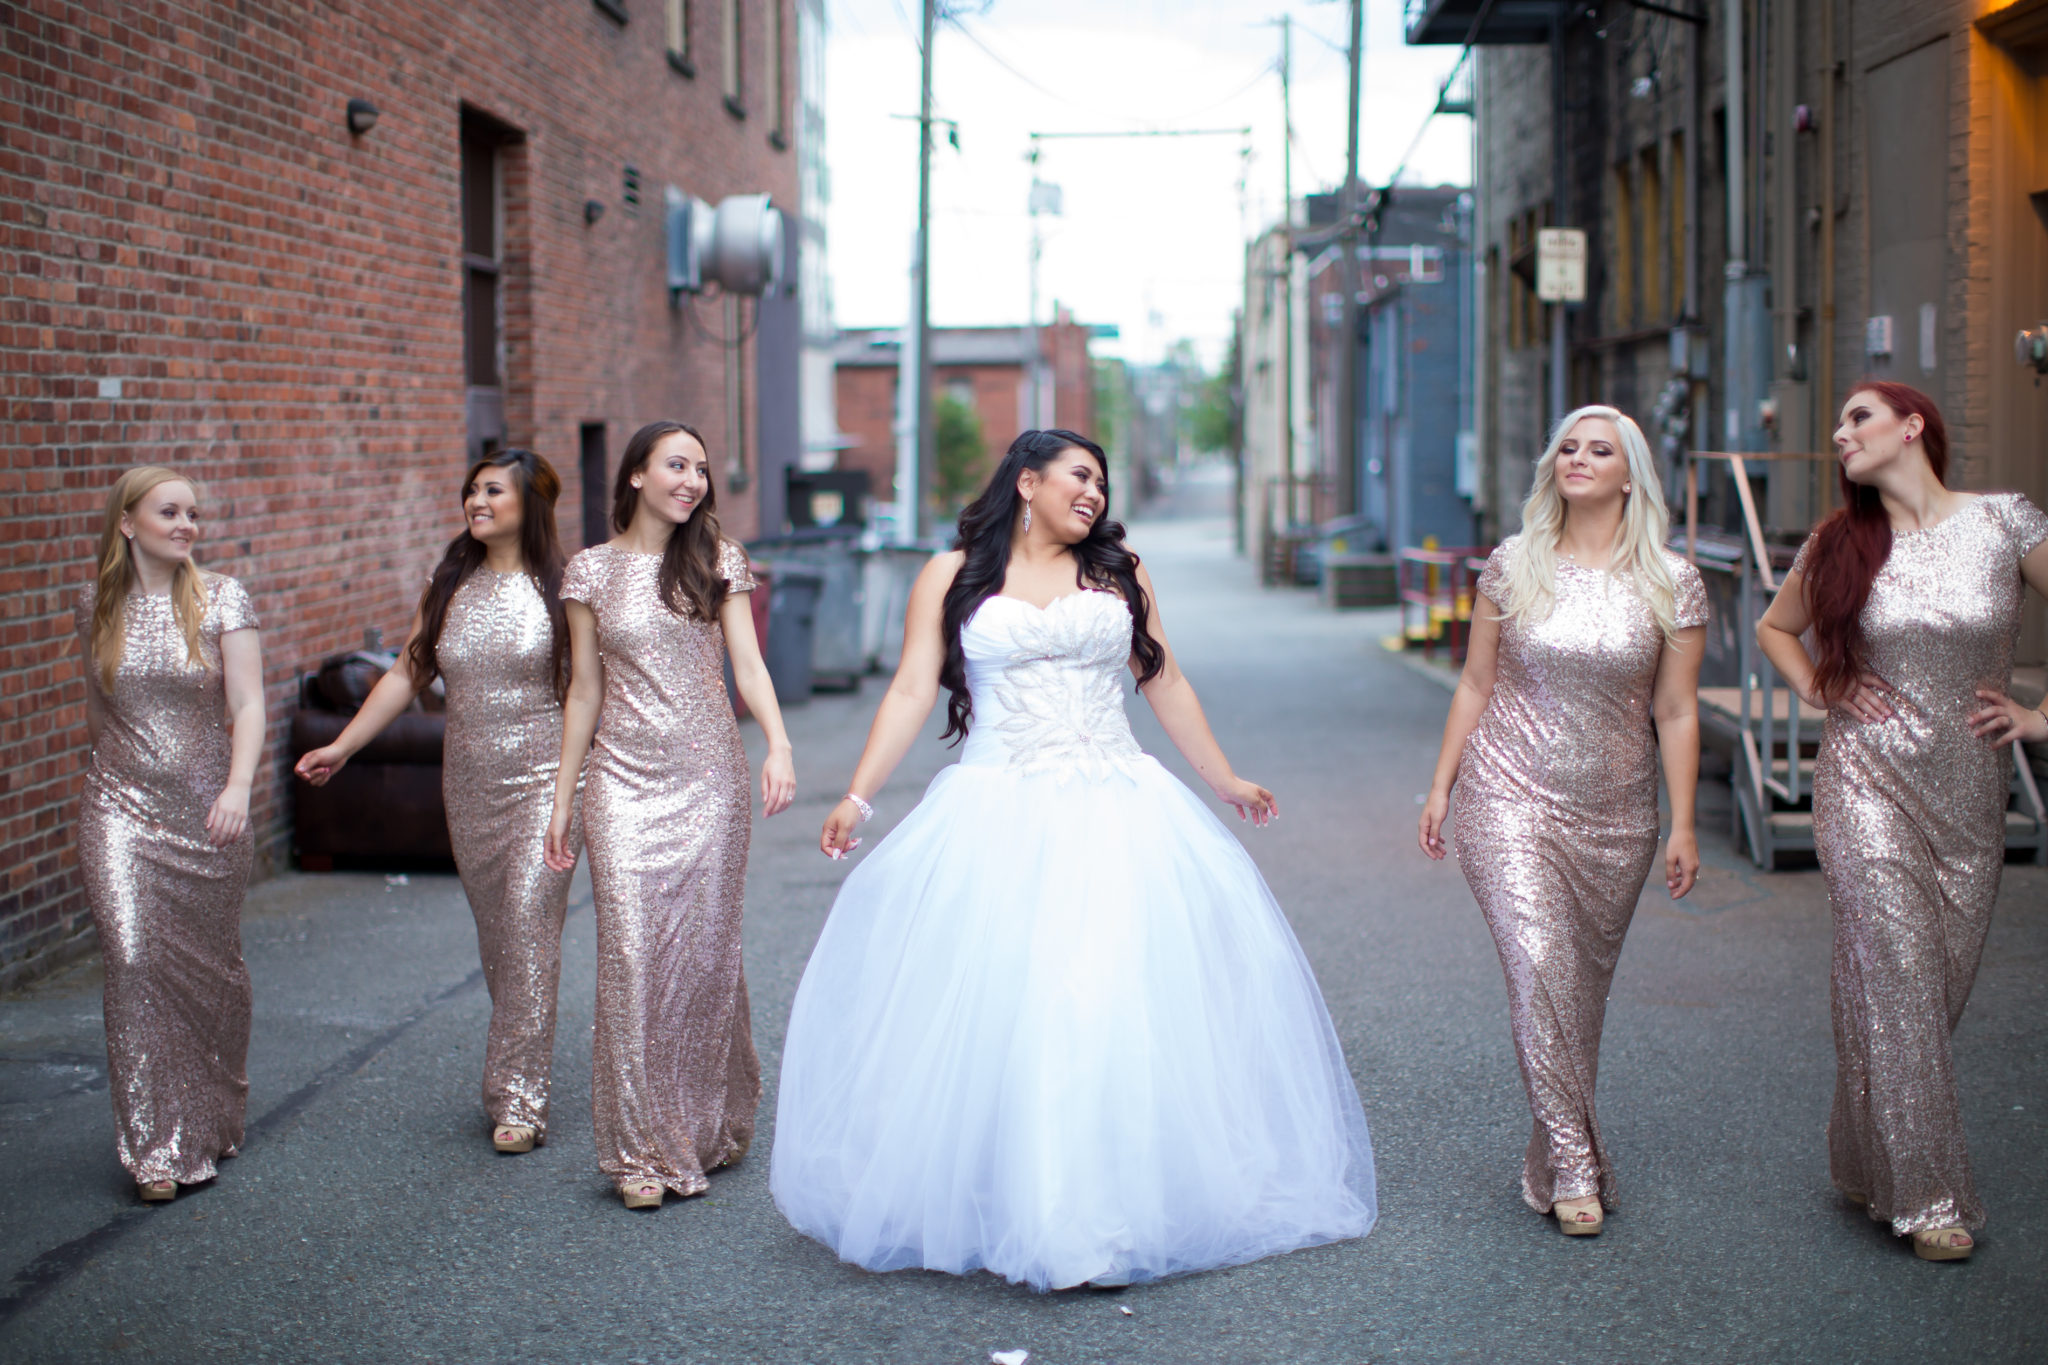 Aleshchenko Bridesmaids Photos 9 GLAM MONTE CRISTO BALLROOM WEDDING | EVERETT WEDDING PHOTOGRAPHER